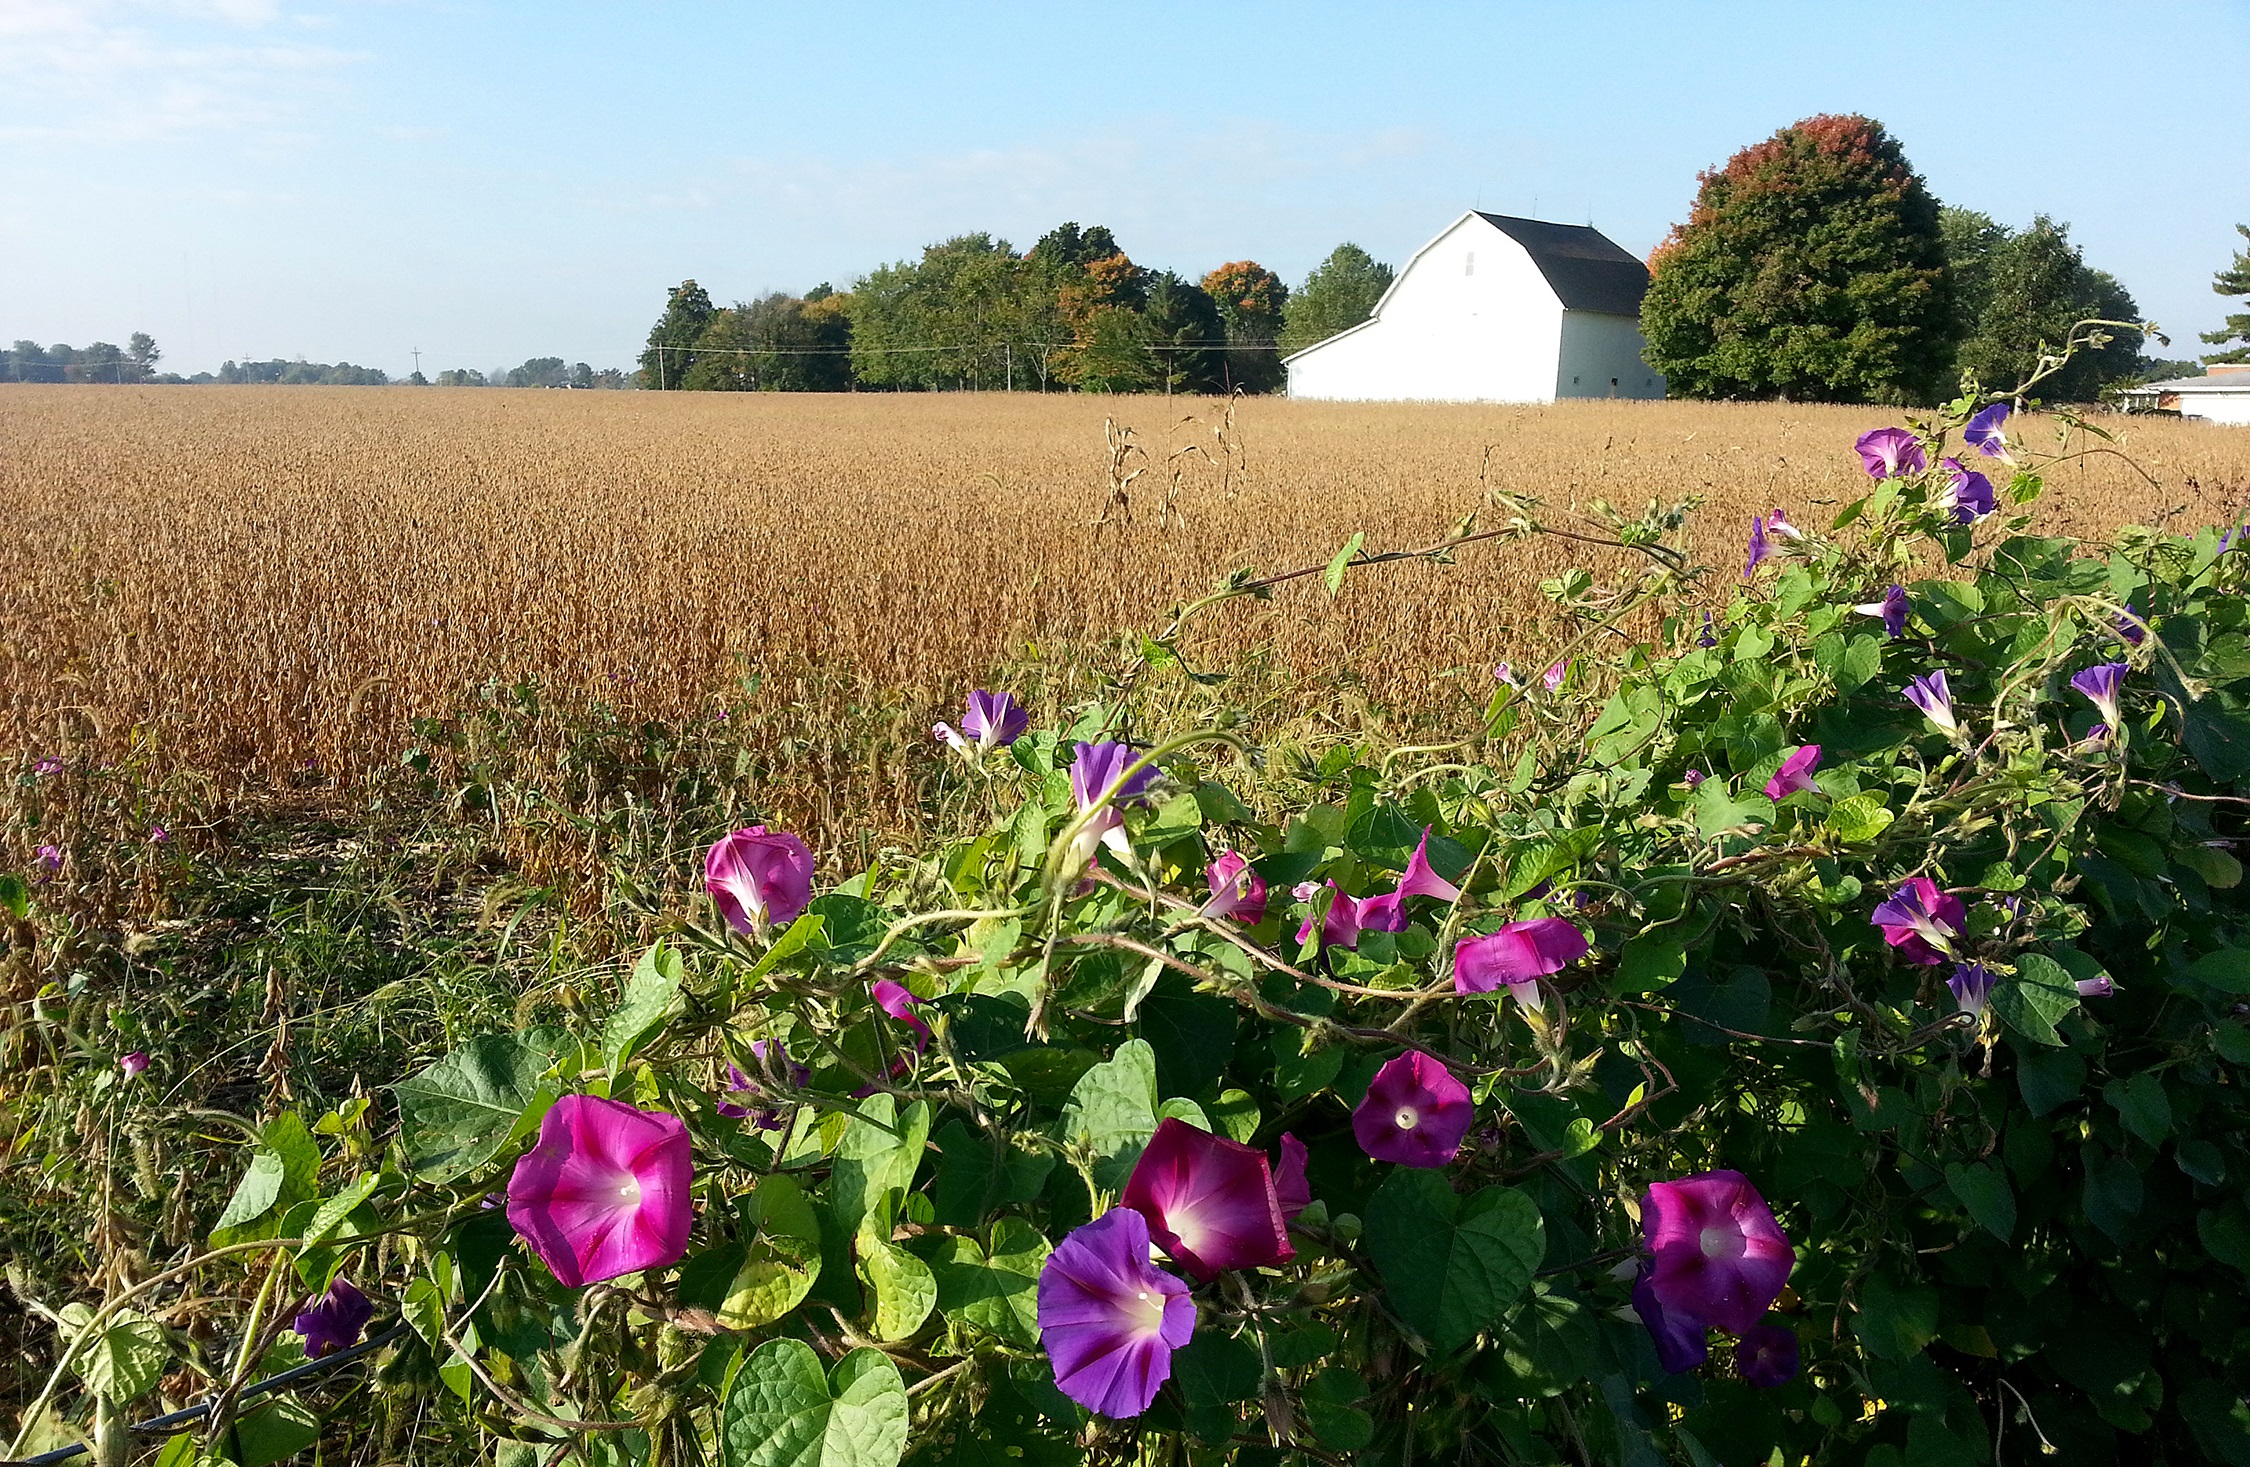 Morning Glories by the Soybeans